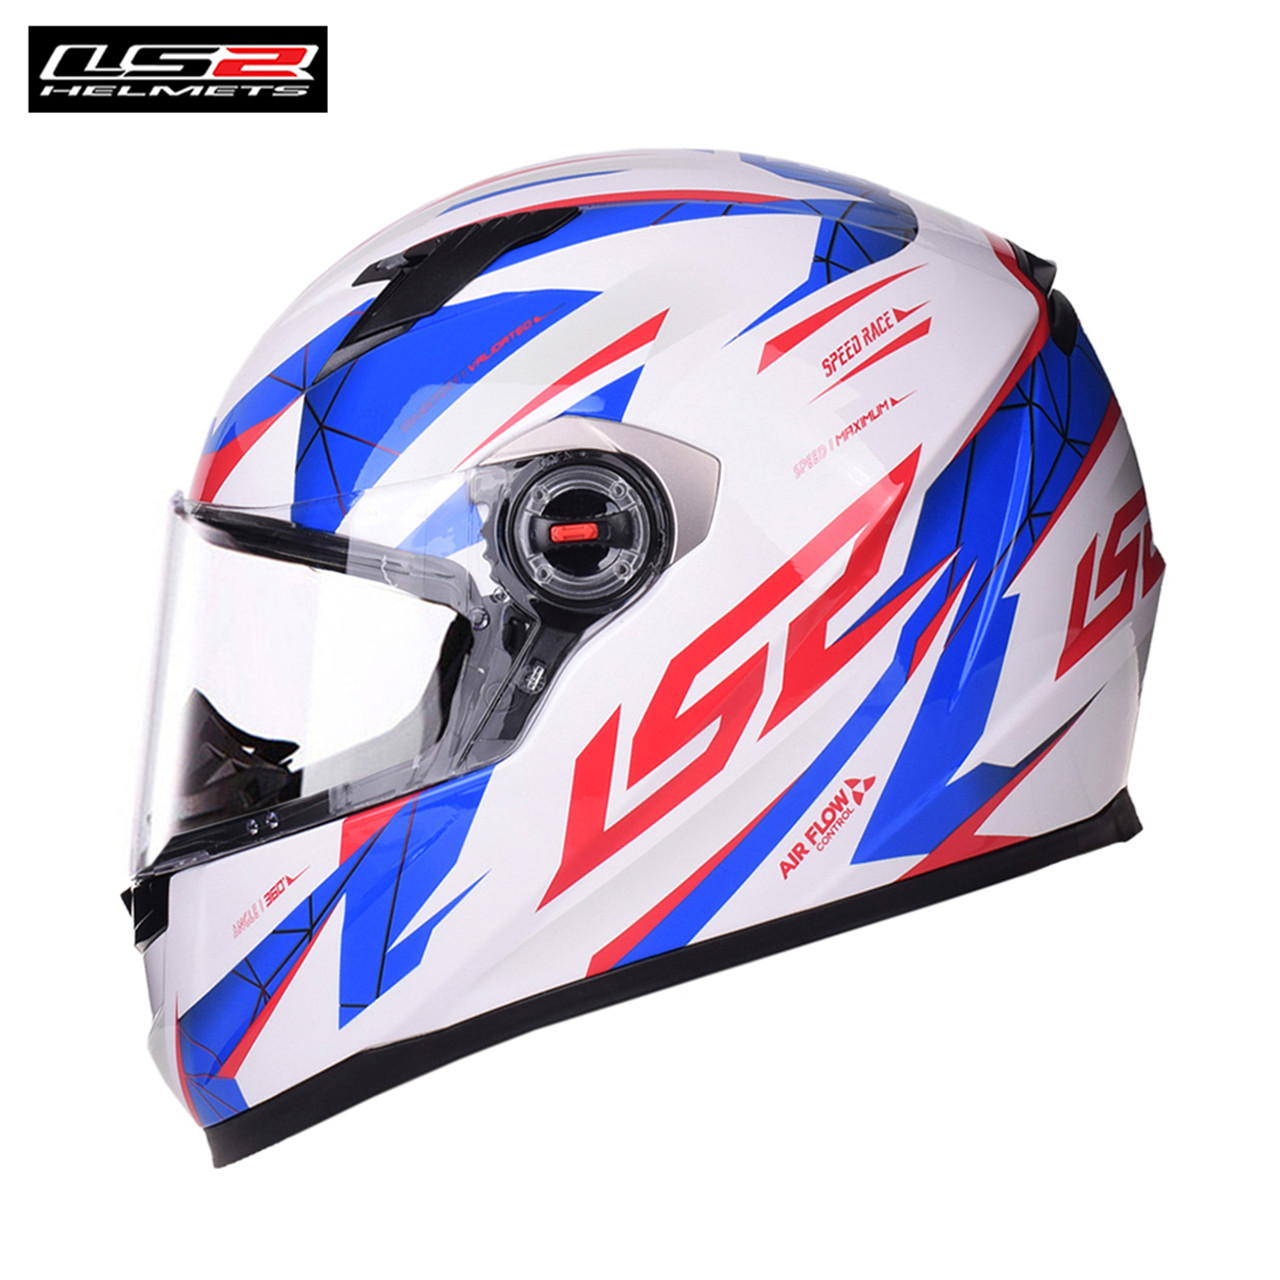 LS2 Helmets 2018 Motorcycle Full Face Racing Helmet Moto Cascos Capacete ls2 Barros Air Flow ls2 global store ls2 ff353 full face motorcycle helmet abs safe structure casque moto capacete ls2 rapid street racing helmets